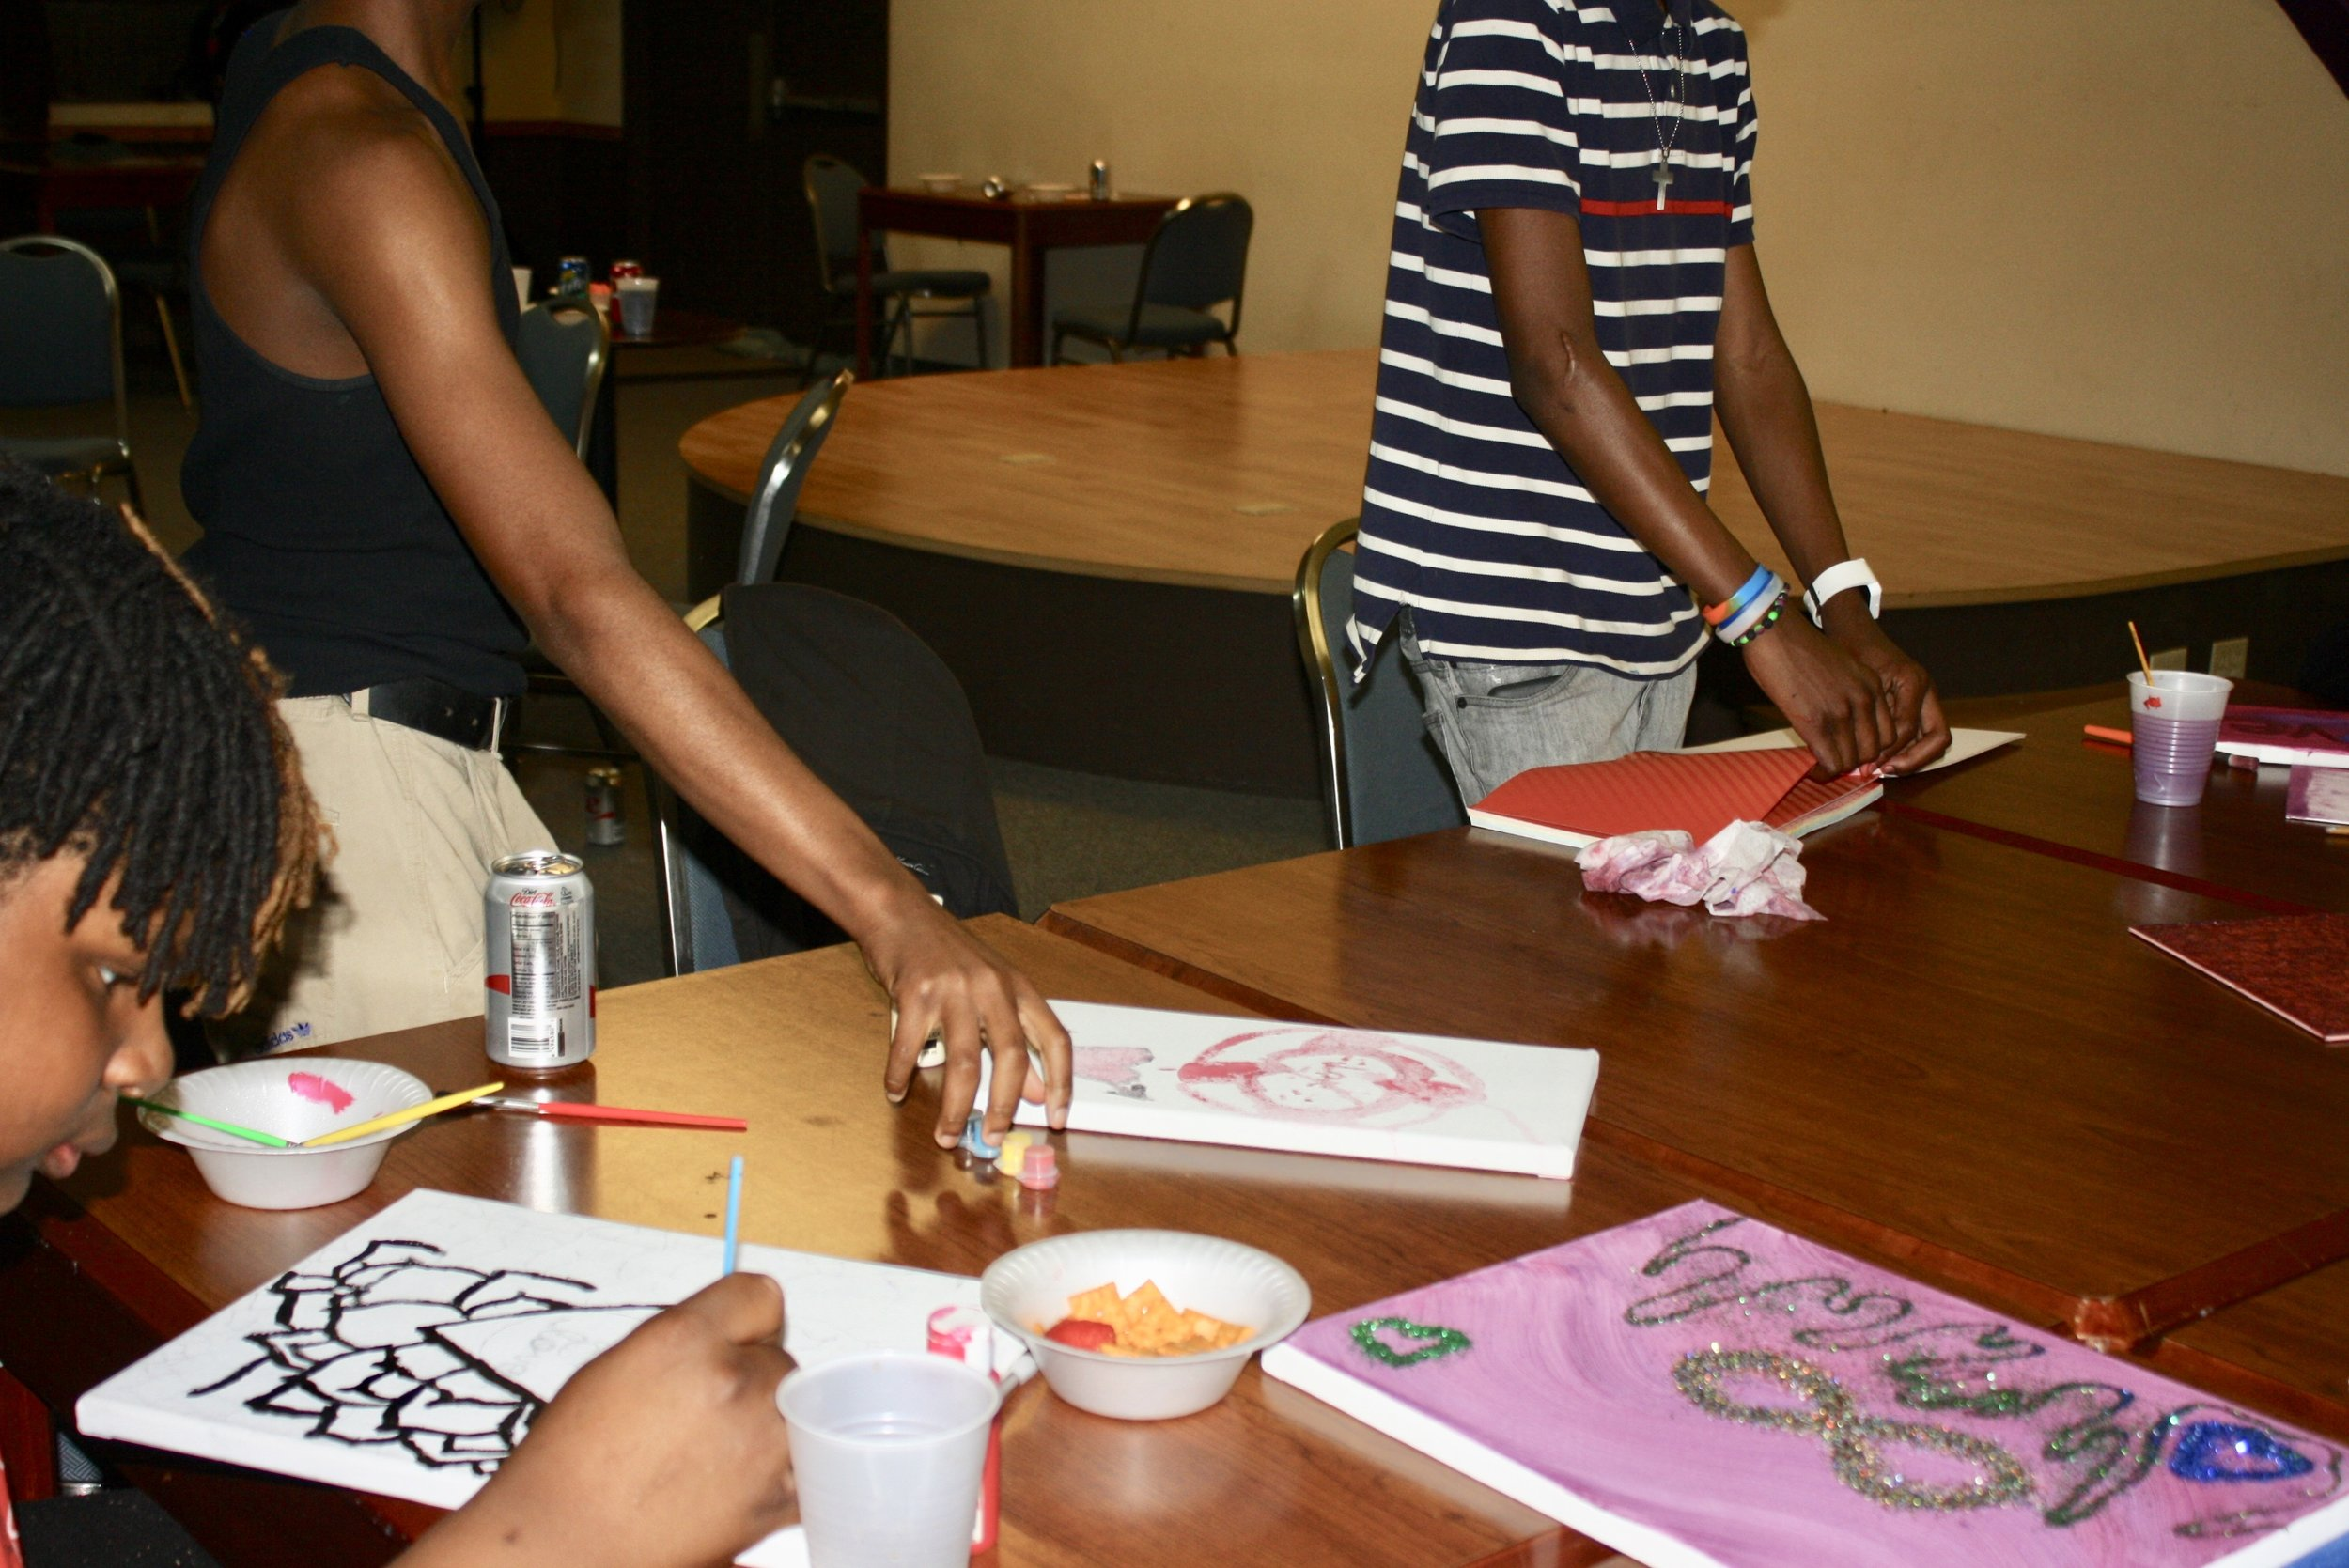 Preparing Art For Youth Art Exhibition